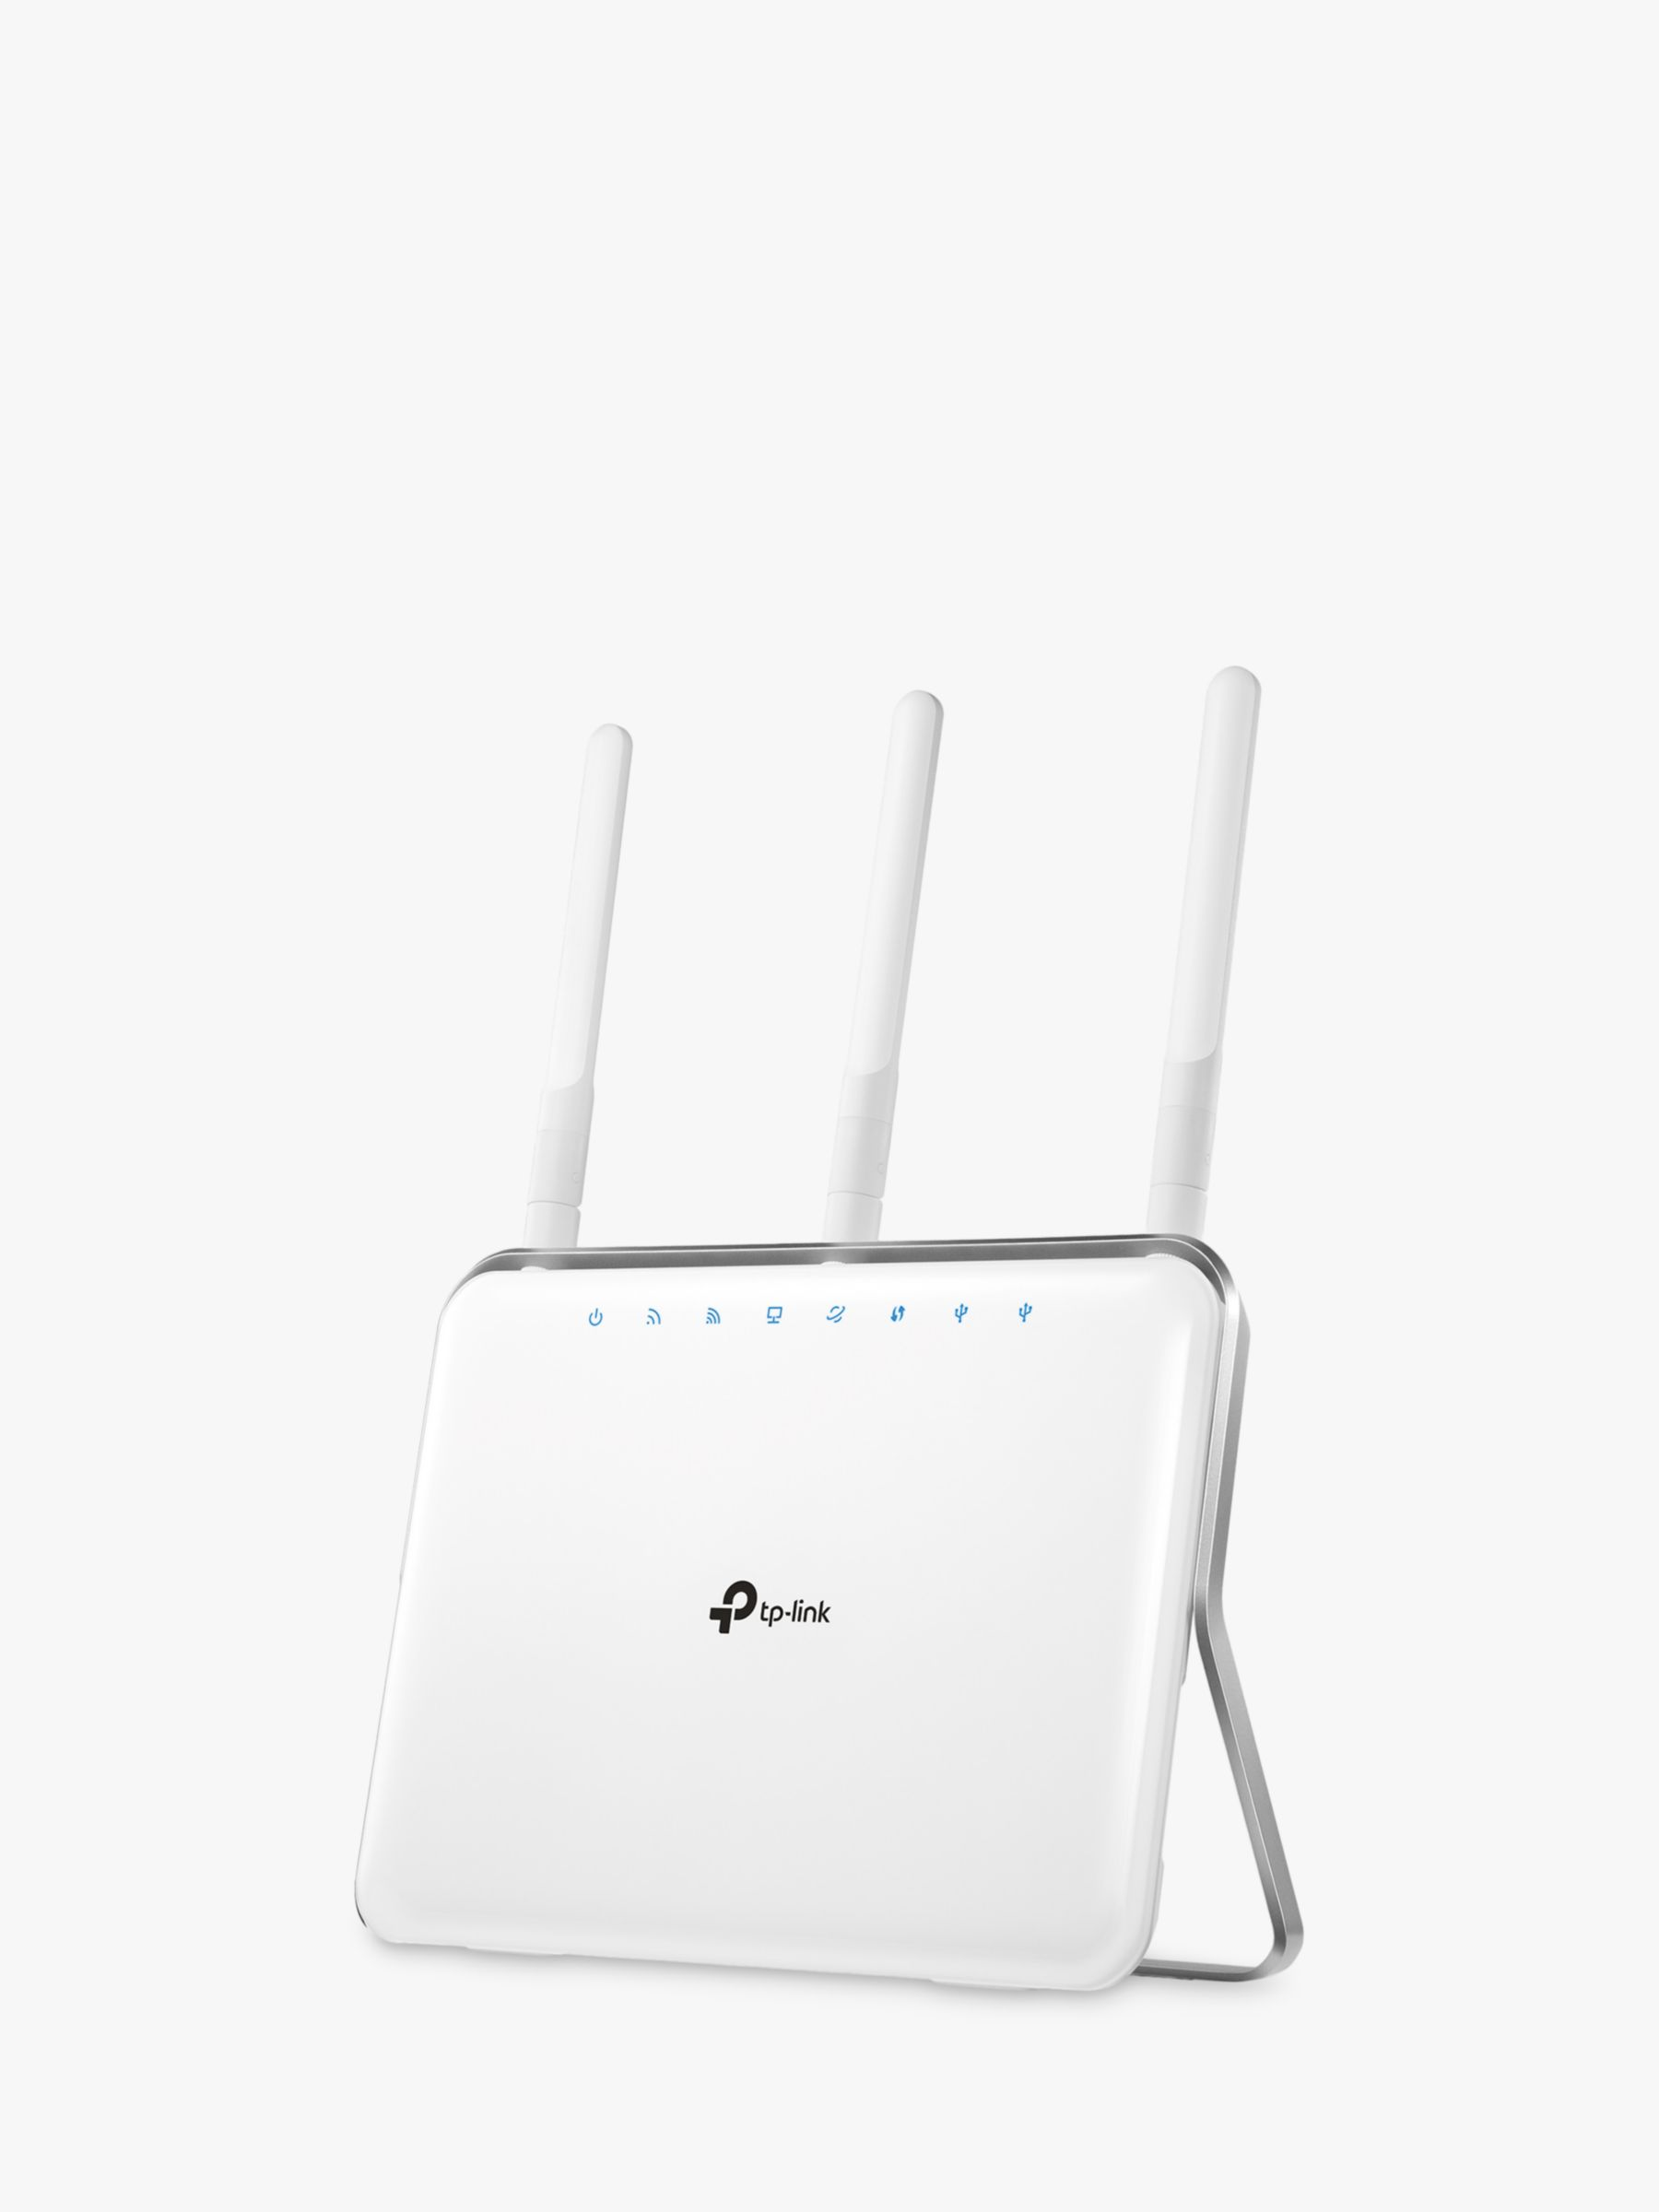 TP-Link TP-LINK AC1900 Wireless Dual Band Gigabit Router, Archer C9